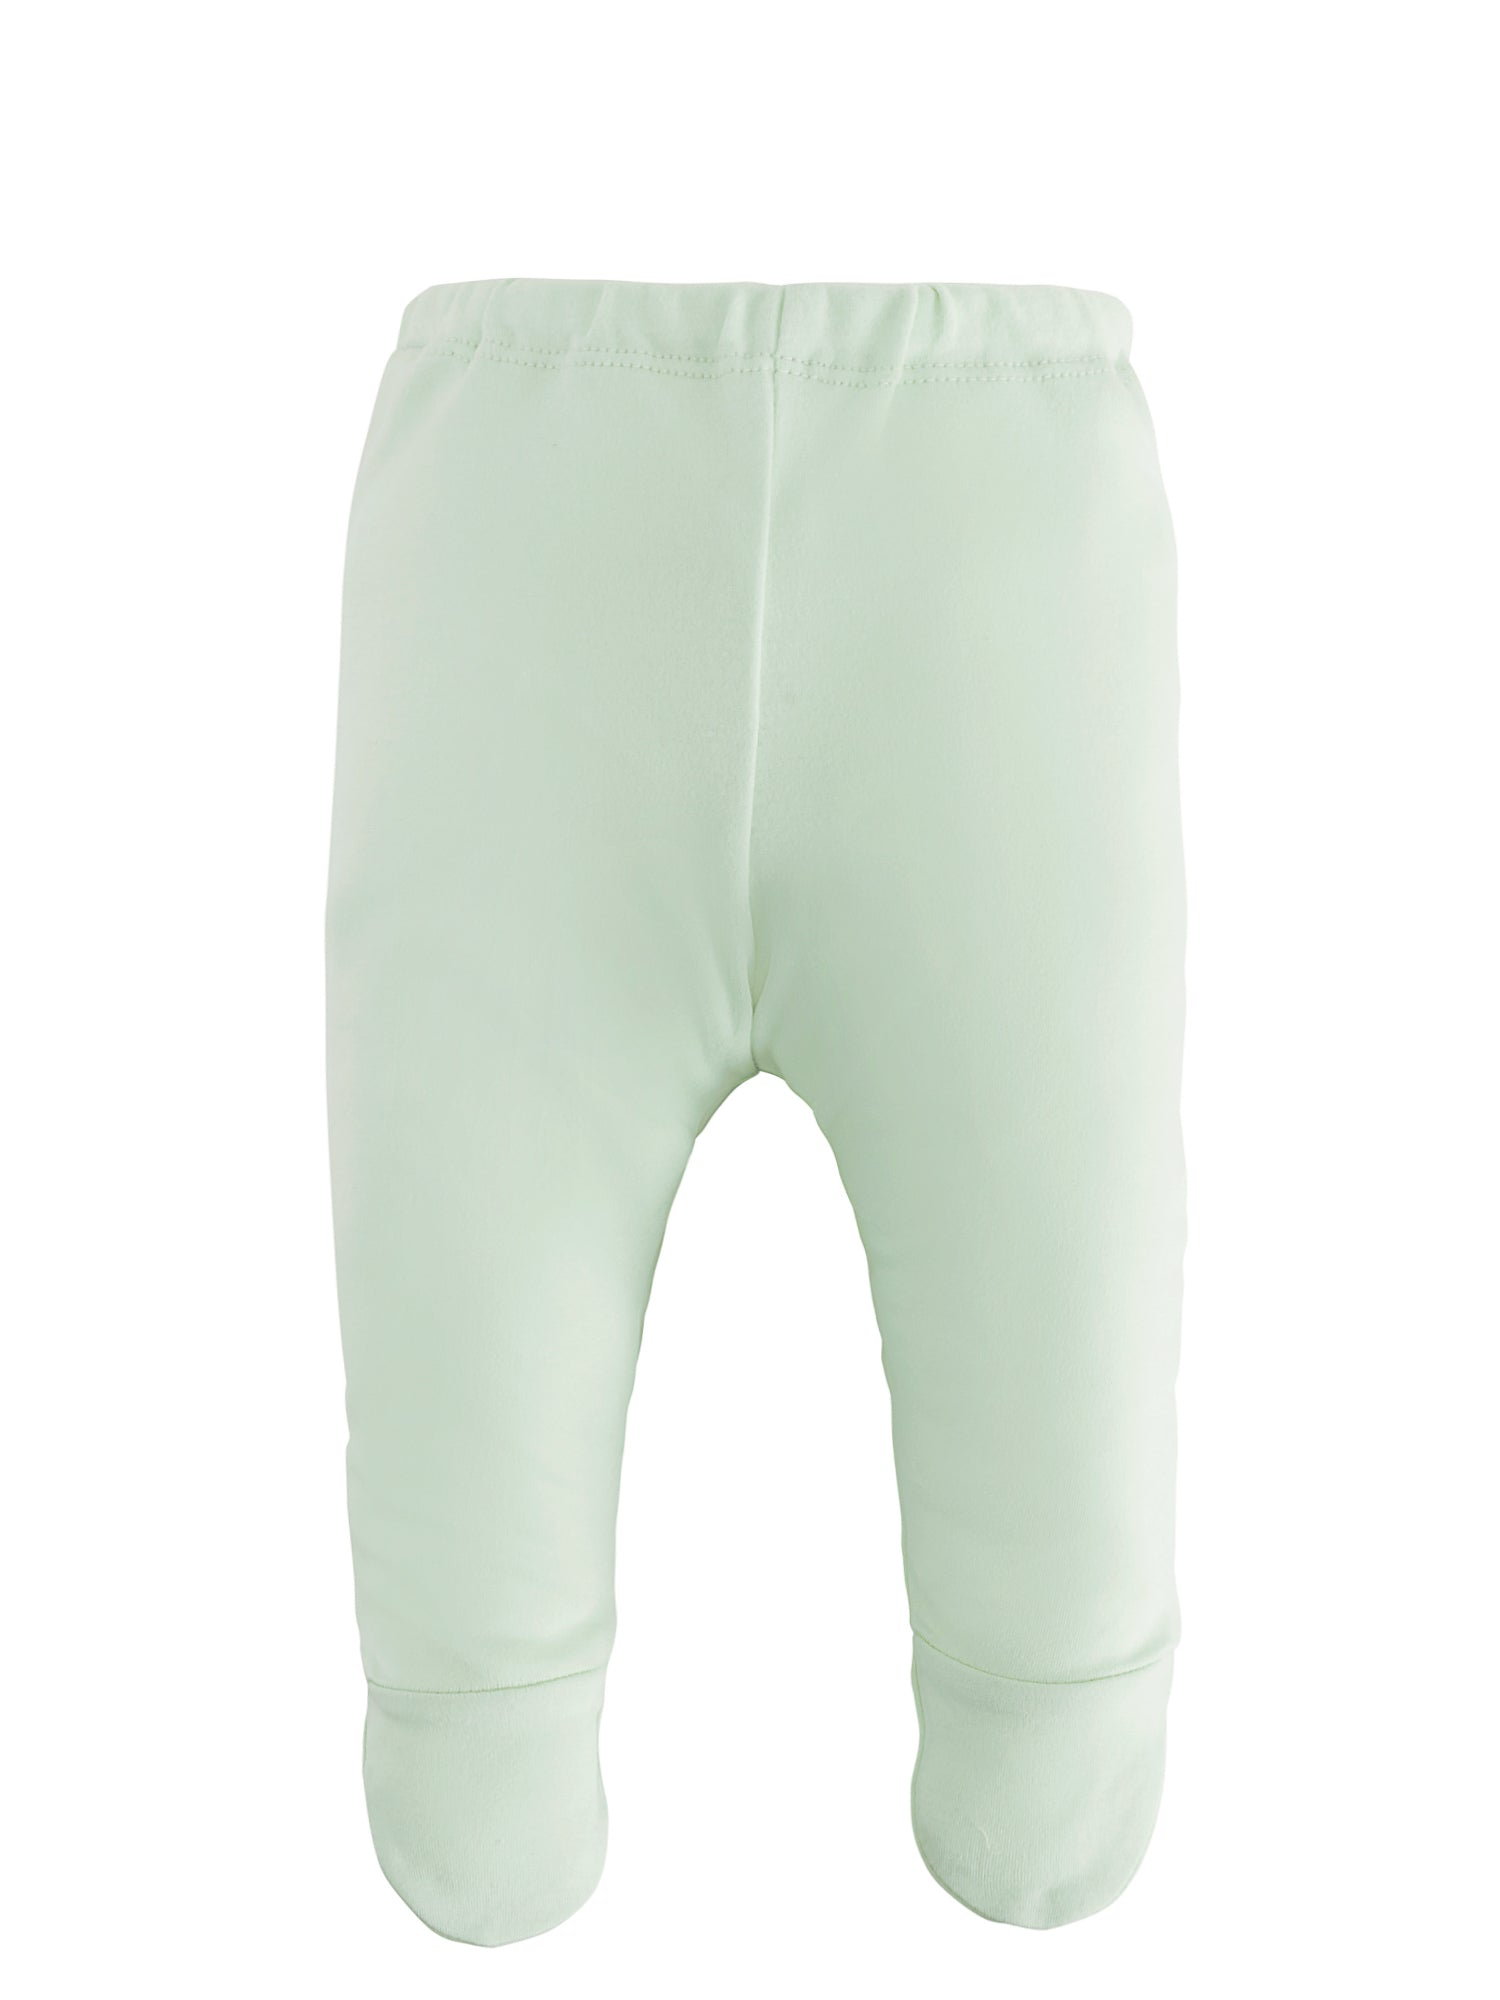 48e990e0a0fa Organic Cotton Unisex Green Footed Baby Pant – Under the Nile